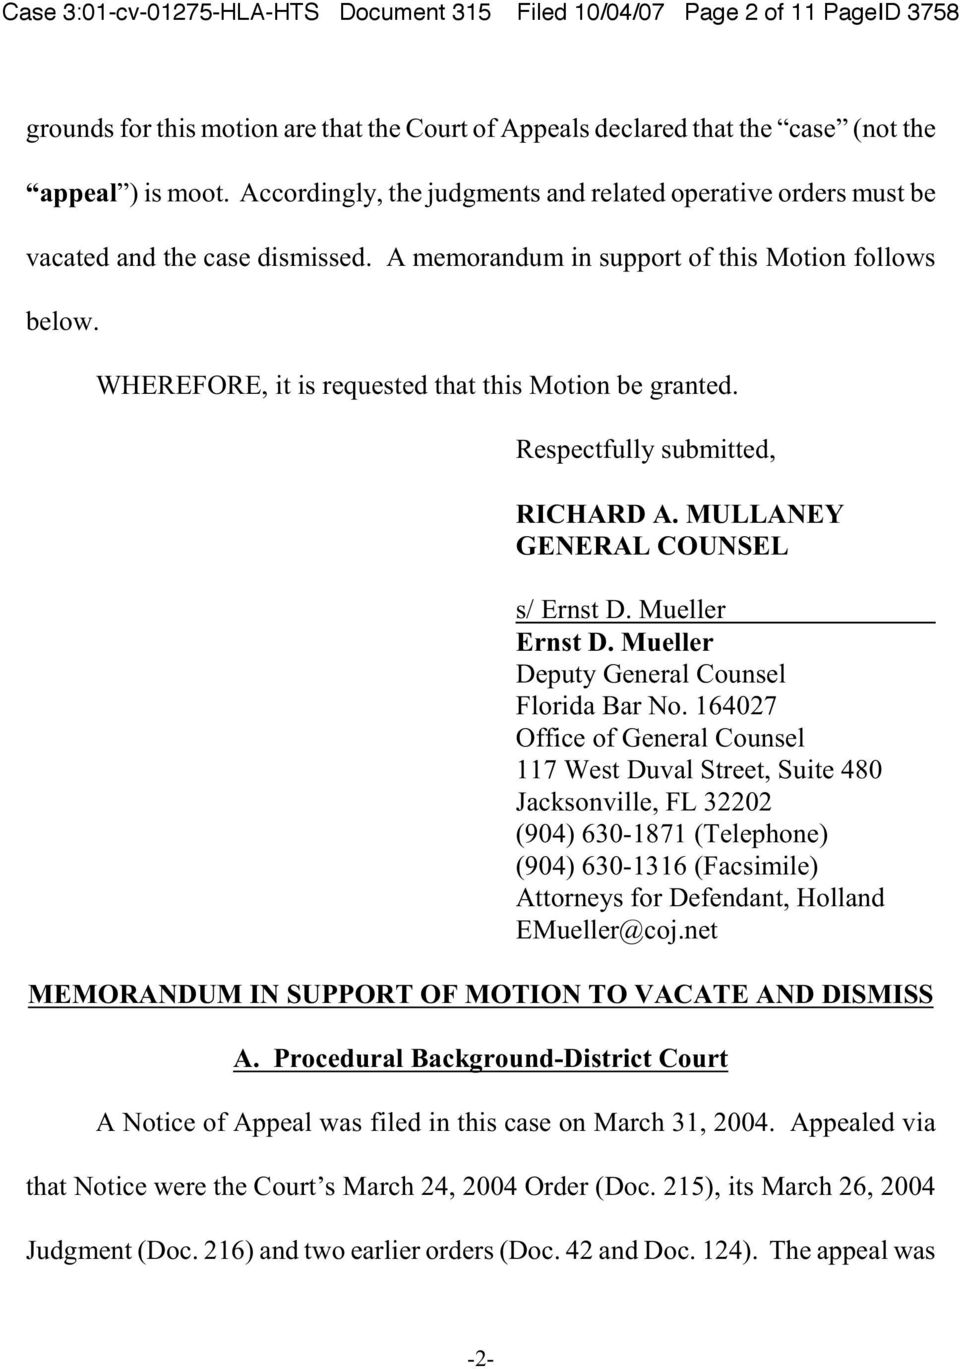 WHEREFORE, it is requested that this Motion be granted. Respectfully submitted, RICHARD A. MULLANEY GENERAL COUNSEL s/ Ernst D. Mueller Ernst D. Mueller Deputy General Counsel Florida Bar No.